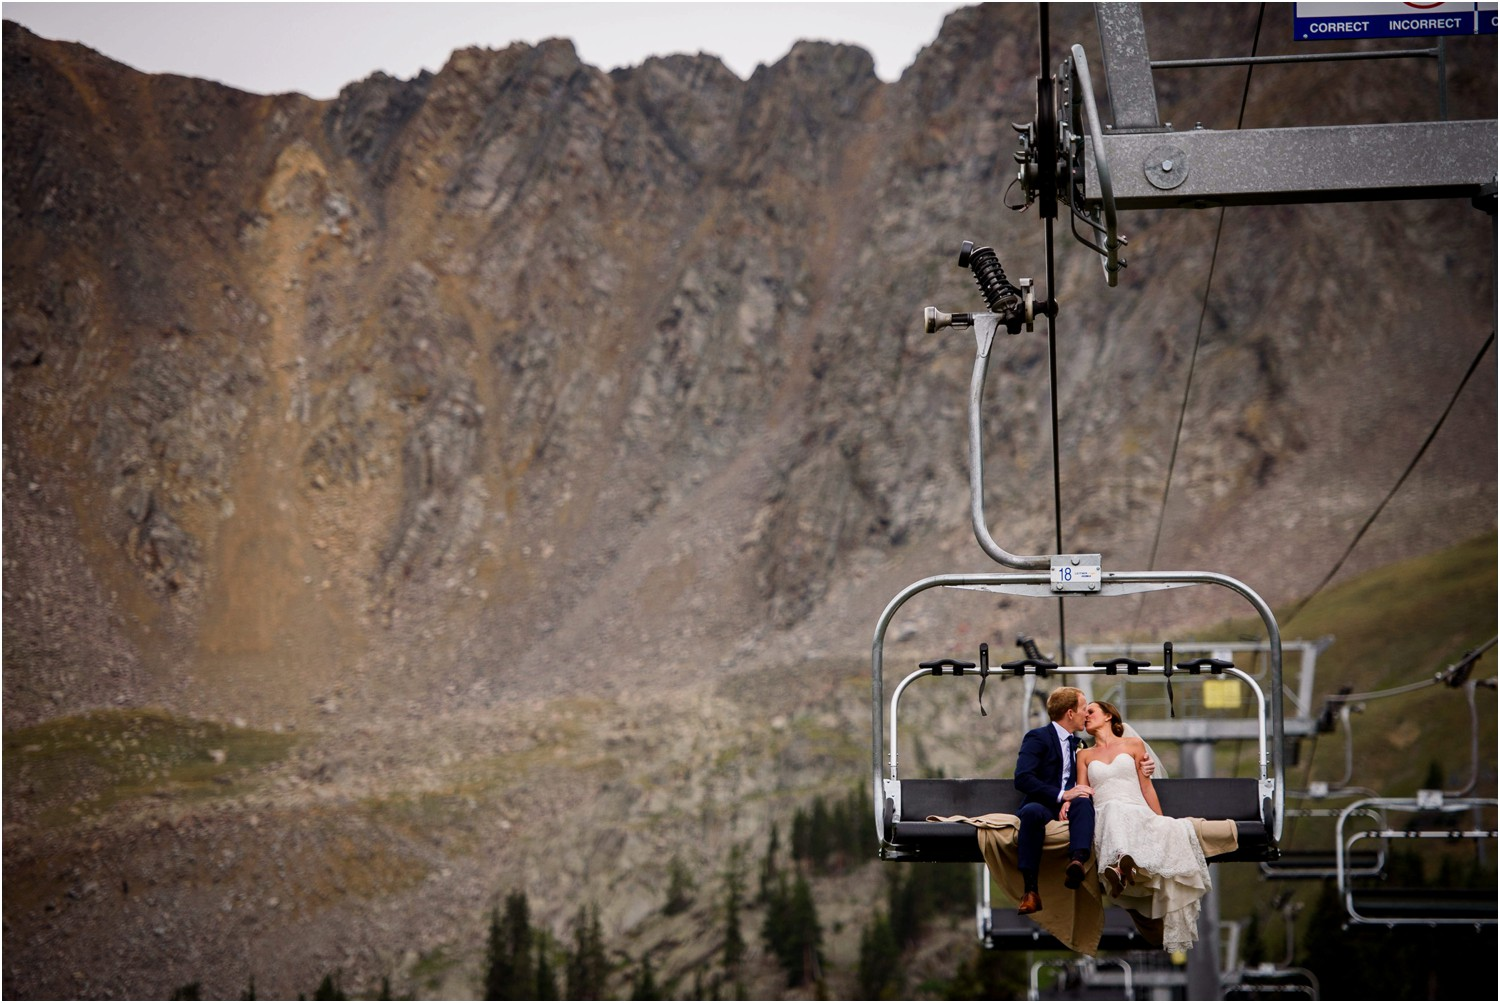 Bride and Groom kiss on ski Chairlift at Arapahoe Basin Colorado